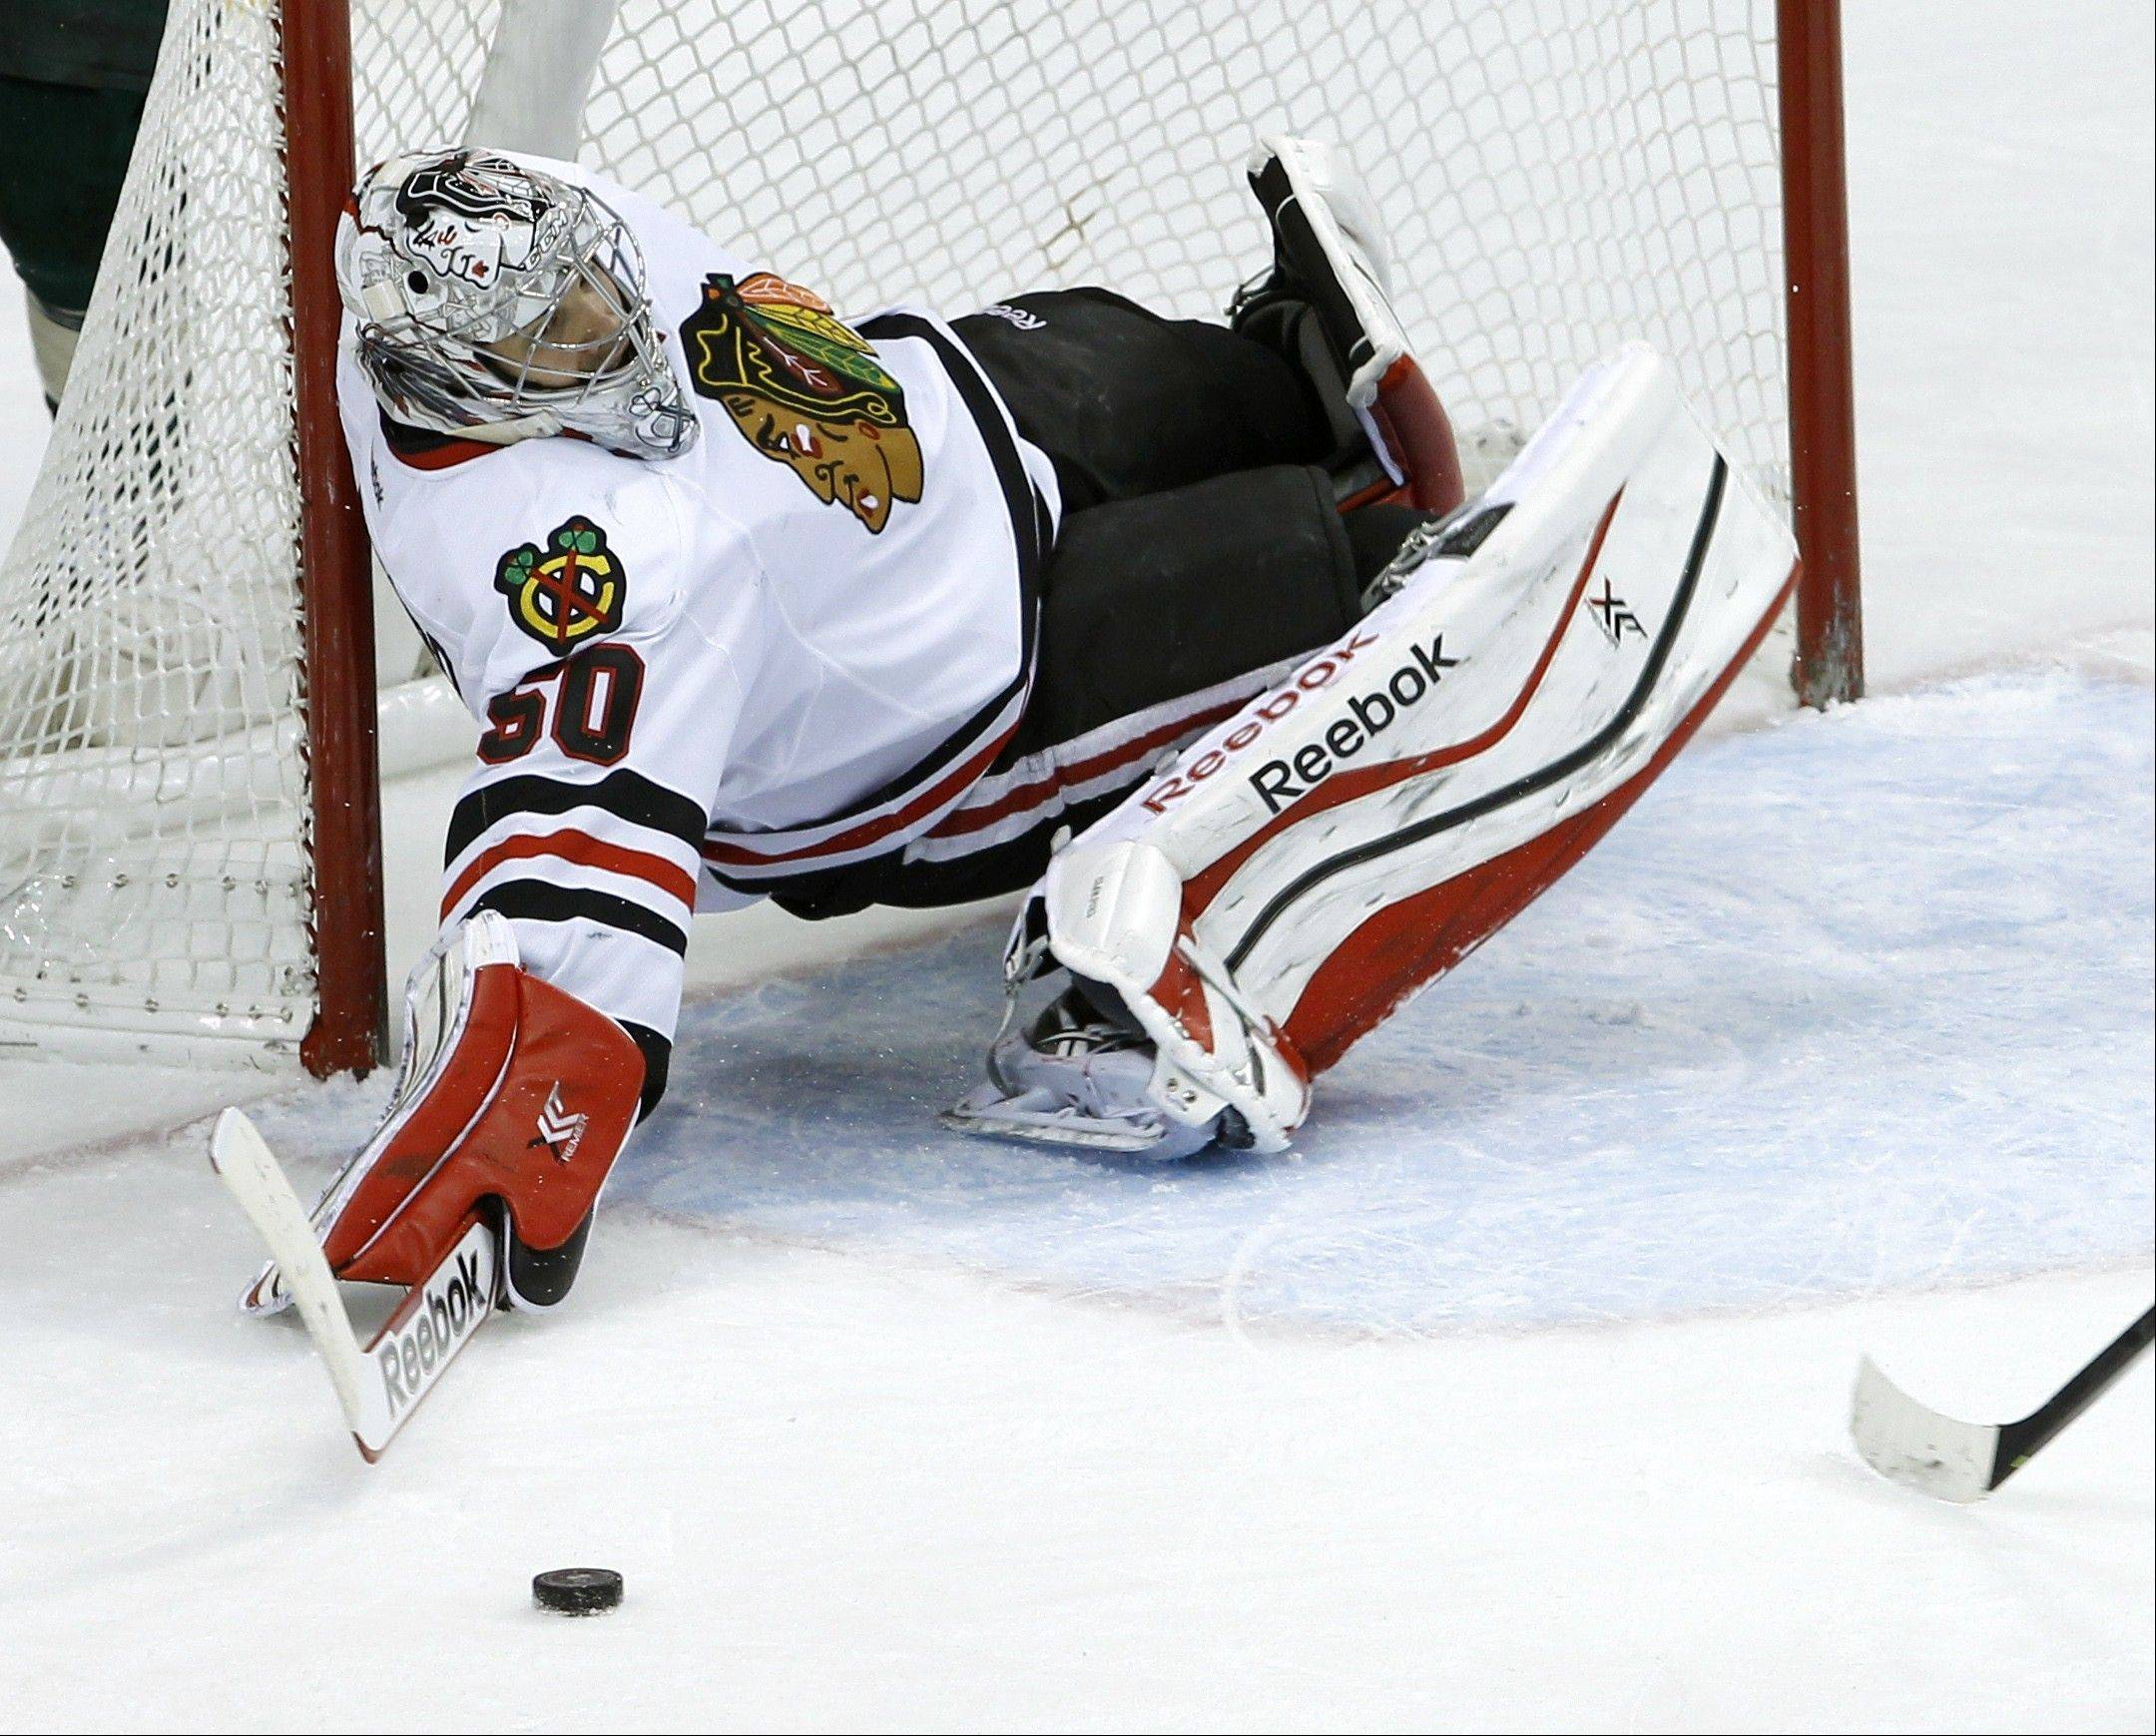 Associated PressBlackhawks goalie Corey Crawford (50) falls over backwards to stop a shot by the Minnesota Wild during the third period of an NHL hockey game in St. Paul, Minn., Thursday. The Wild beat the Blackhawks 4-3.